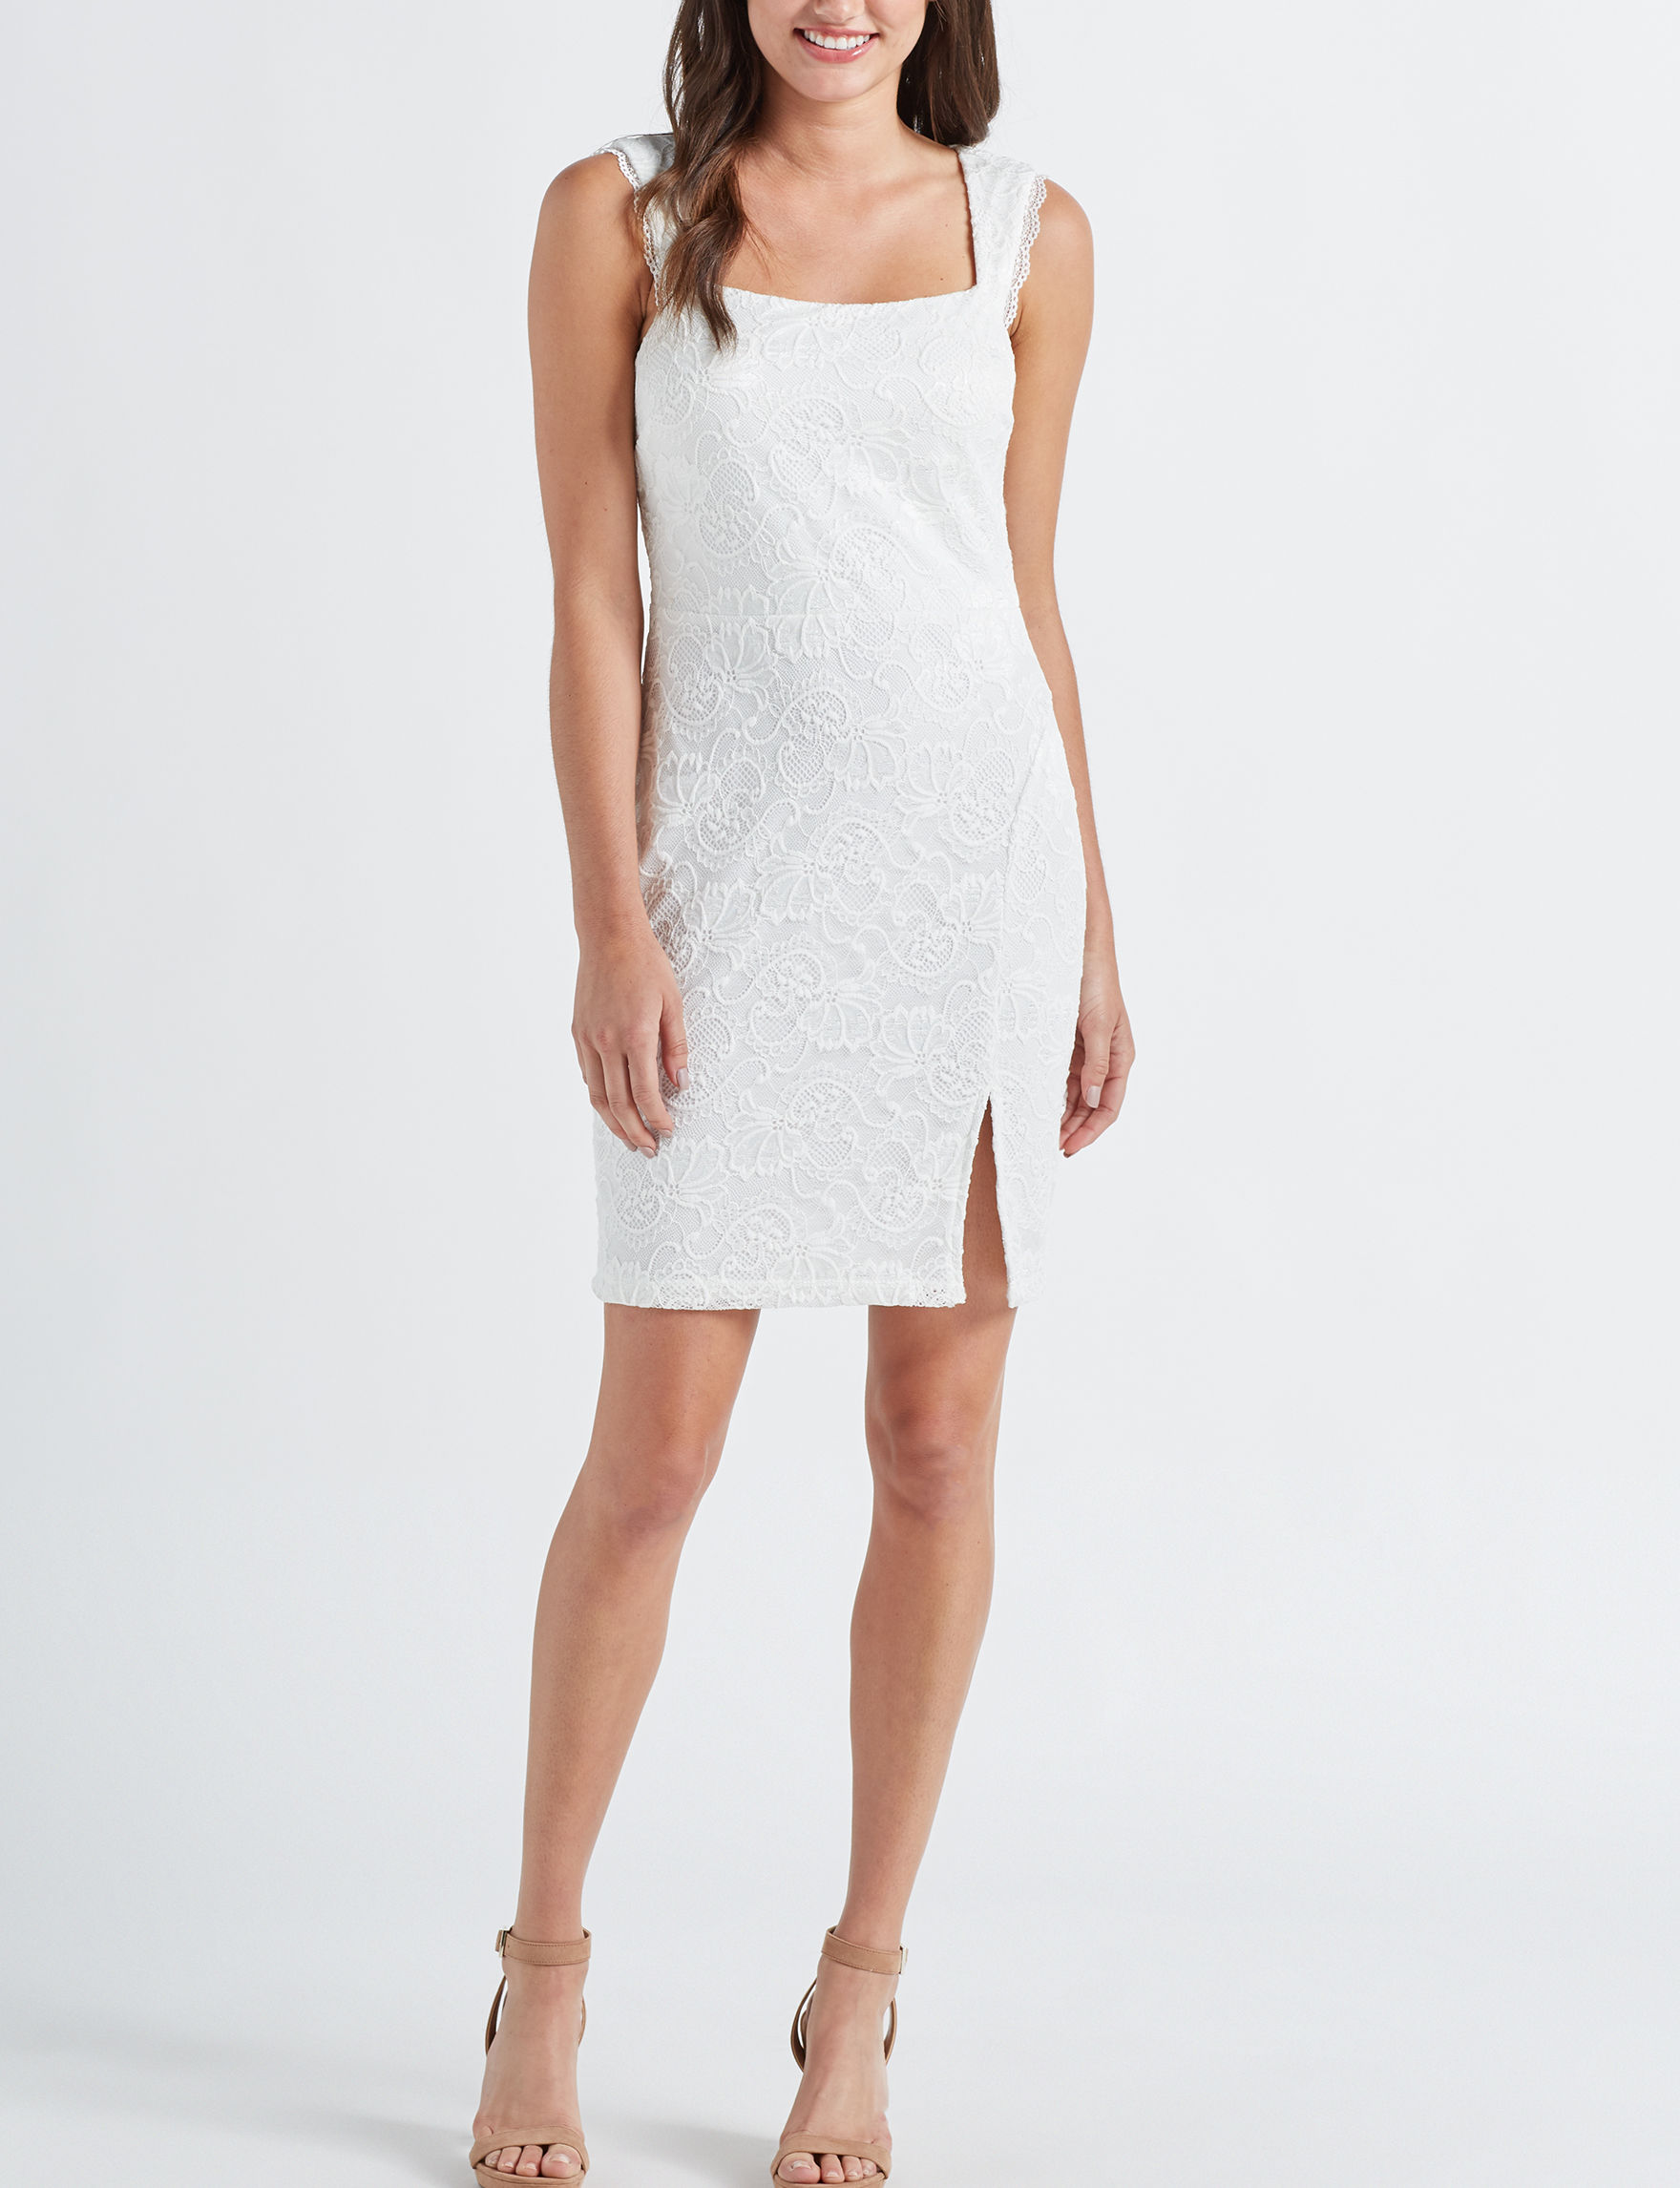 Sequin Hearts White Everyday & Casual Bodycon Dresses